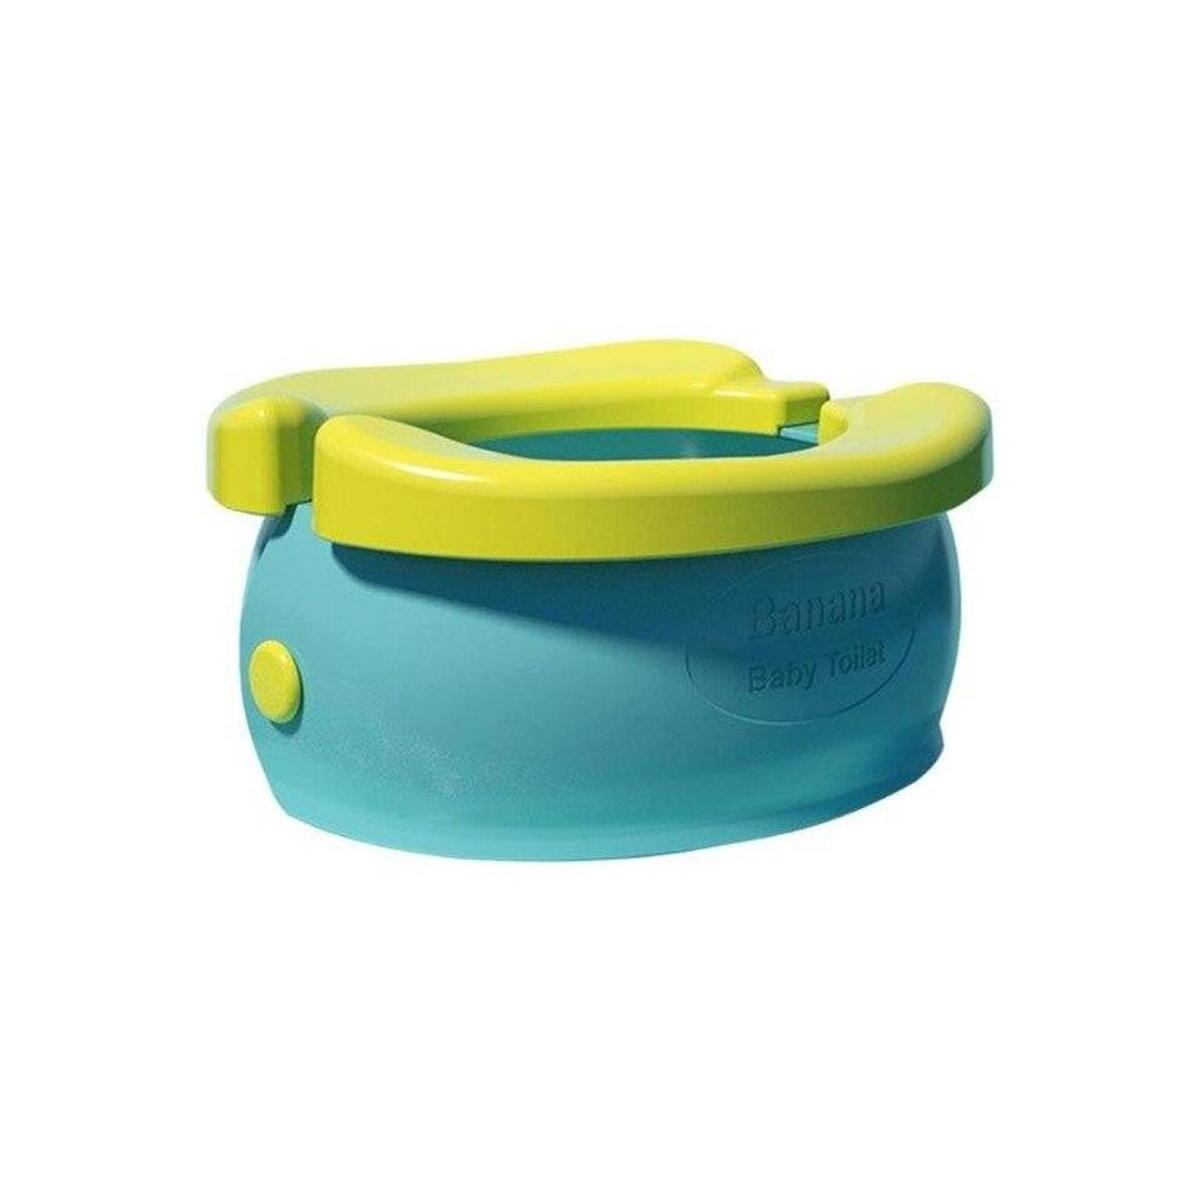 Portable Baby Potty Training Seat Cute Banana PatternFolding Toilet Urinal Chamber Pots Seat Travel